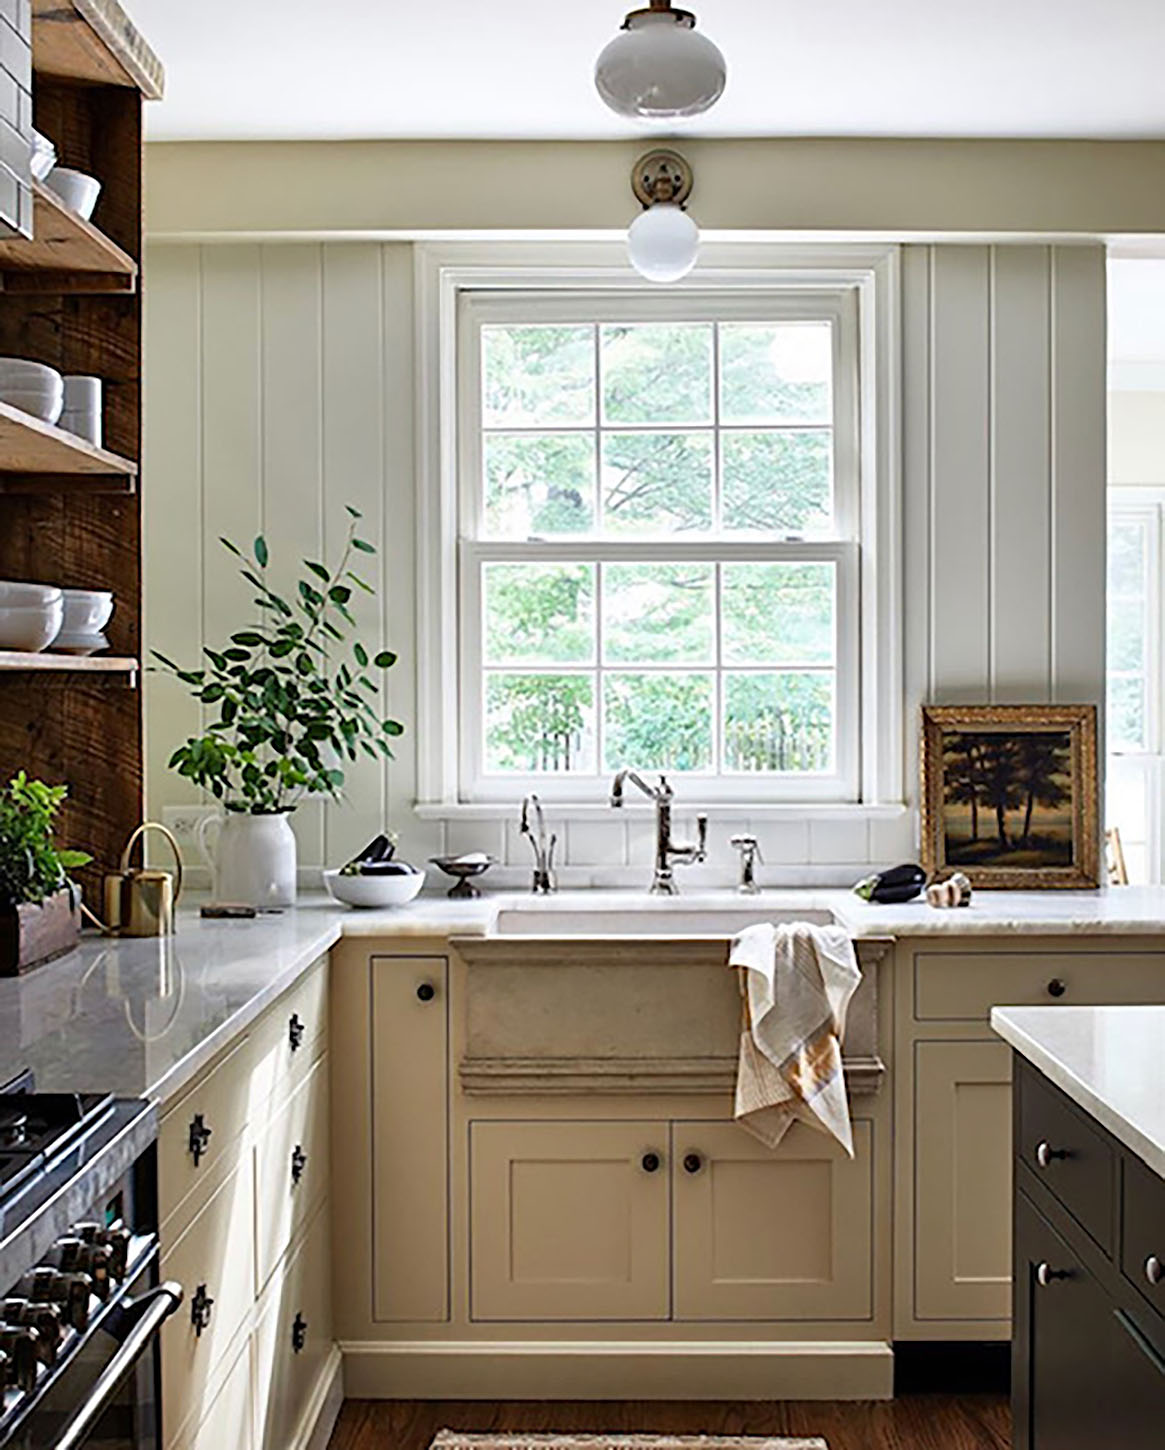 lauren liess designed kitchen on cindy hattersley's blog